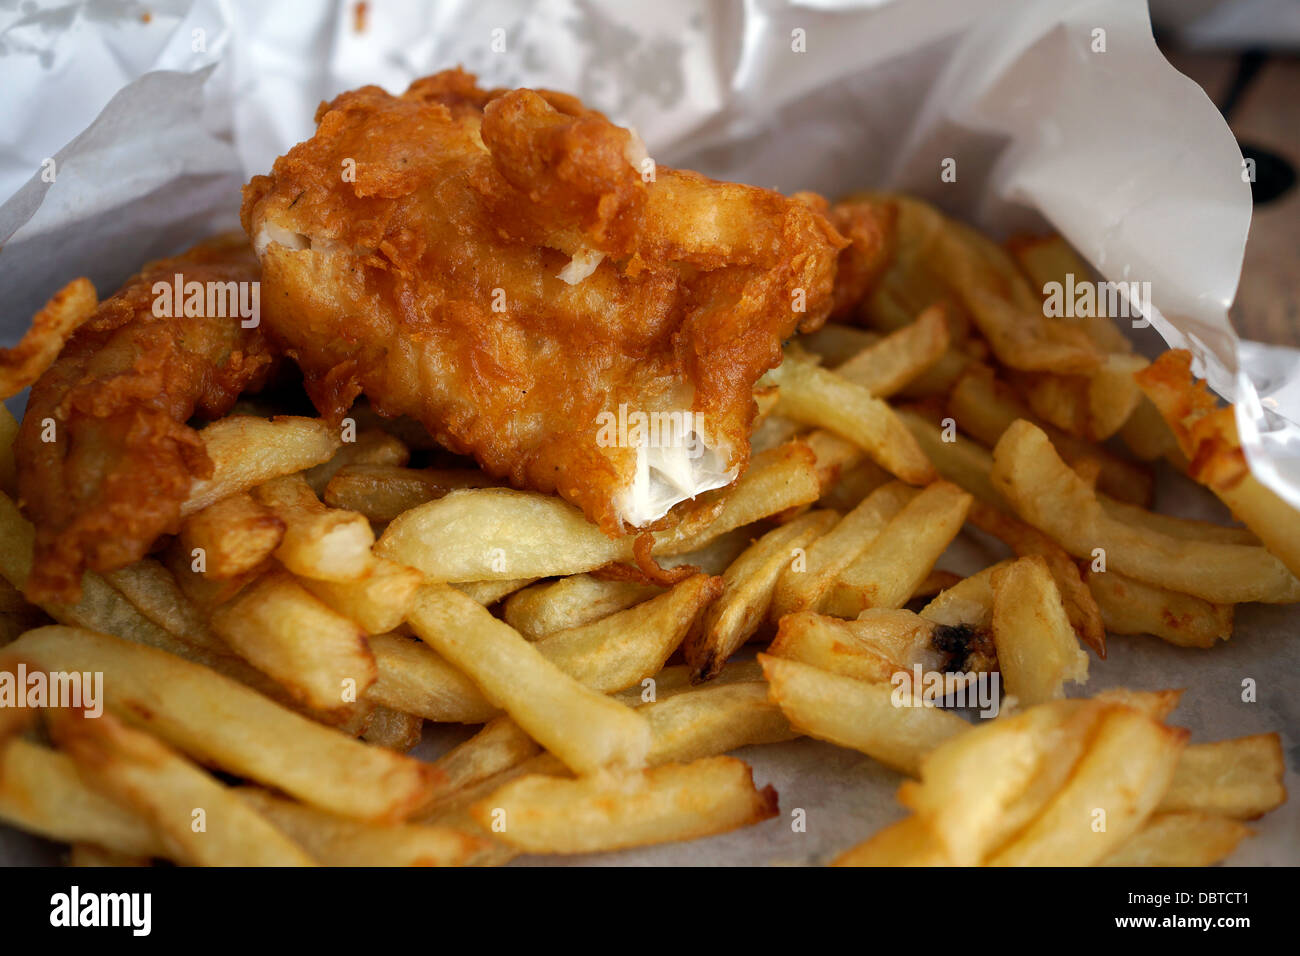 South african chips near stock photos south african for Fish chips near me